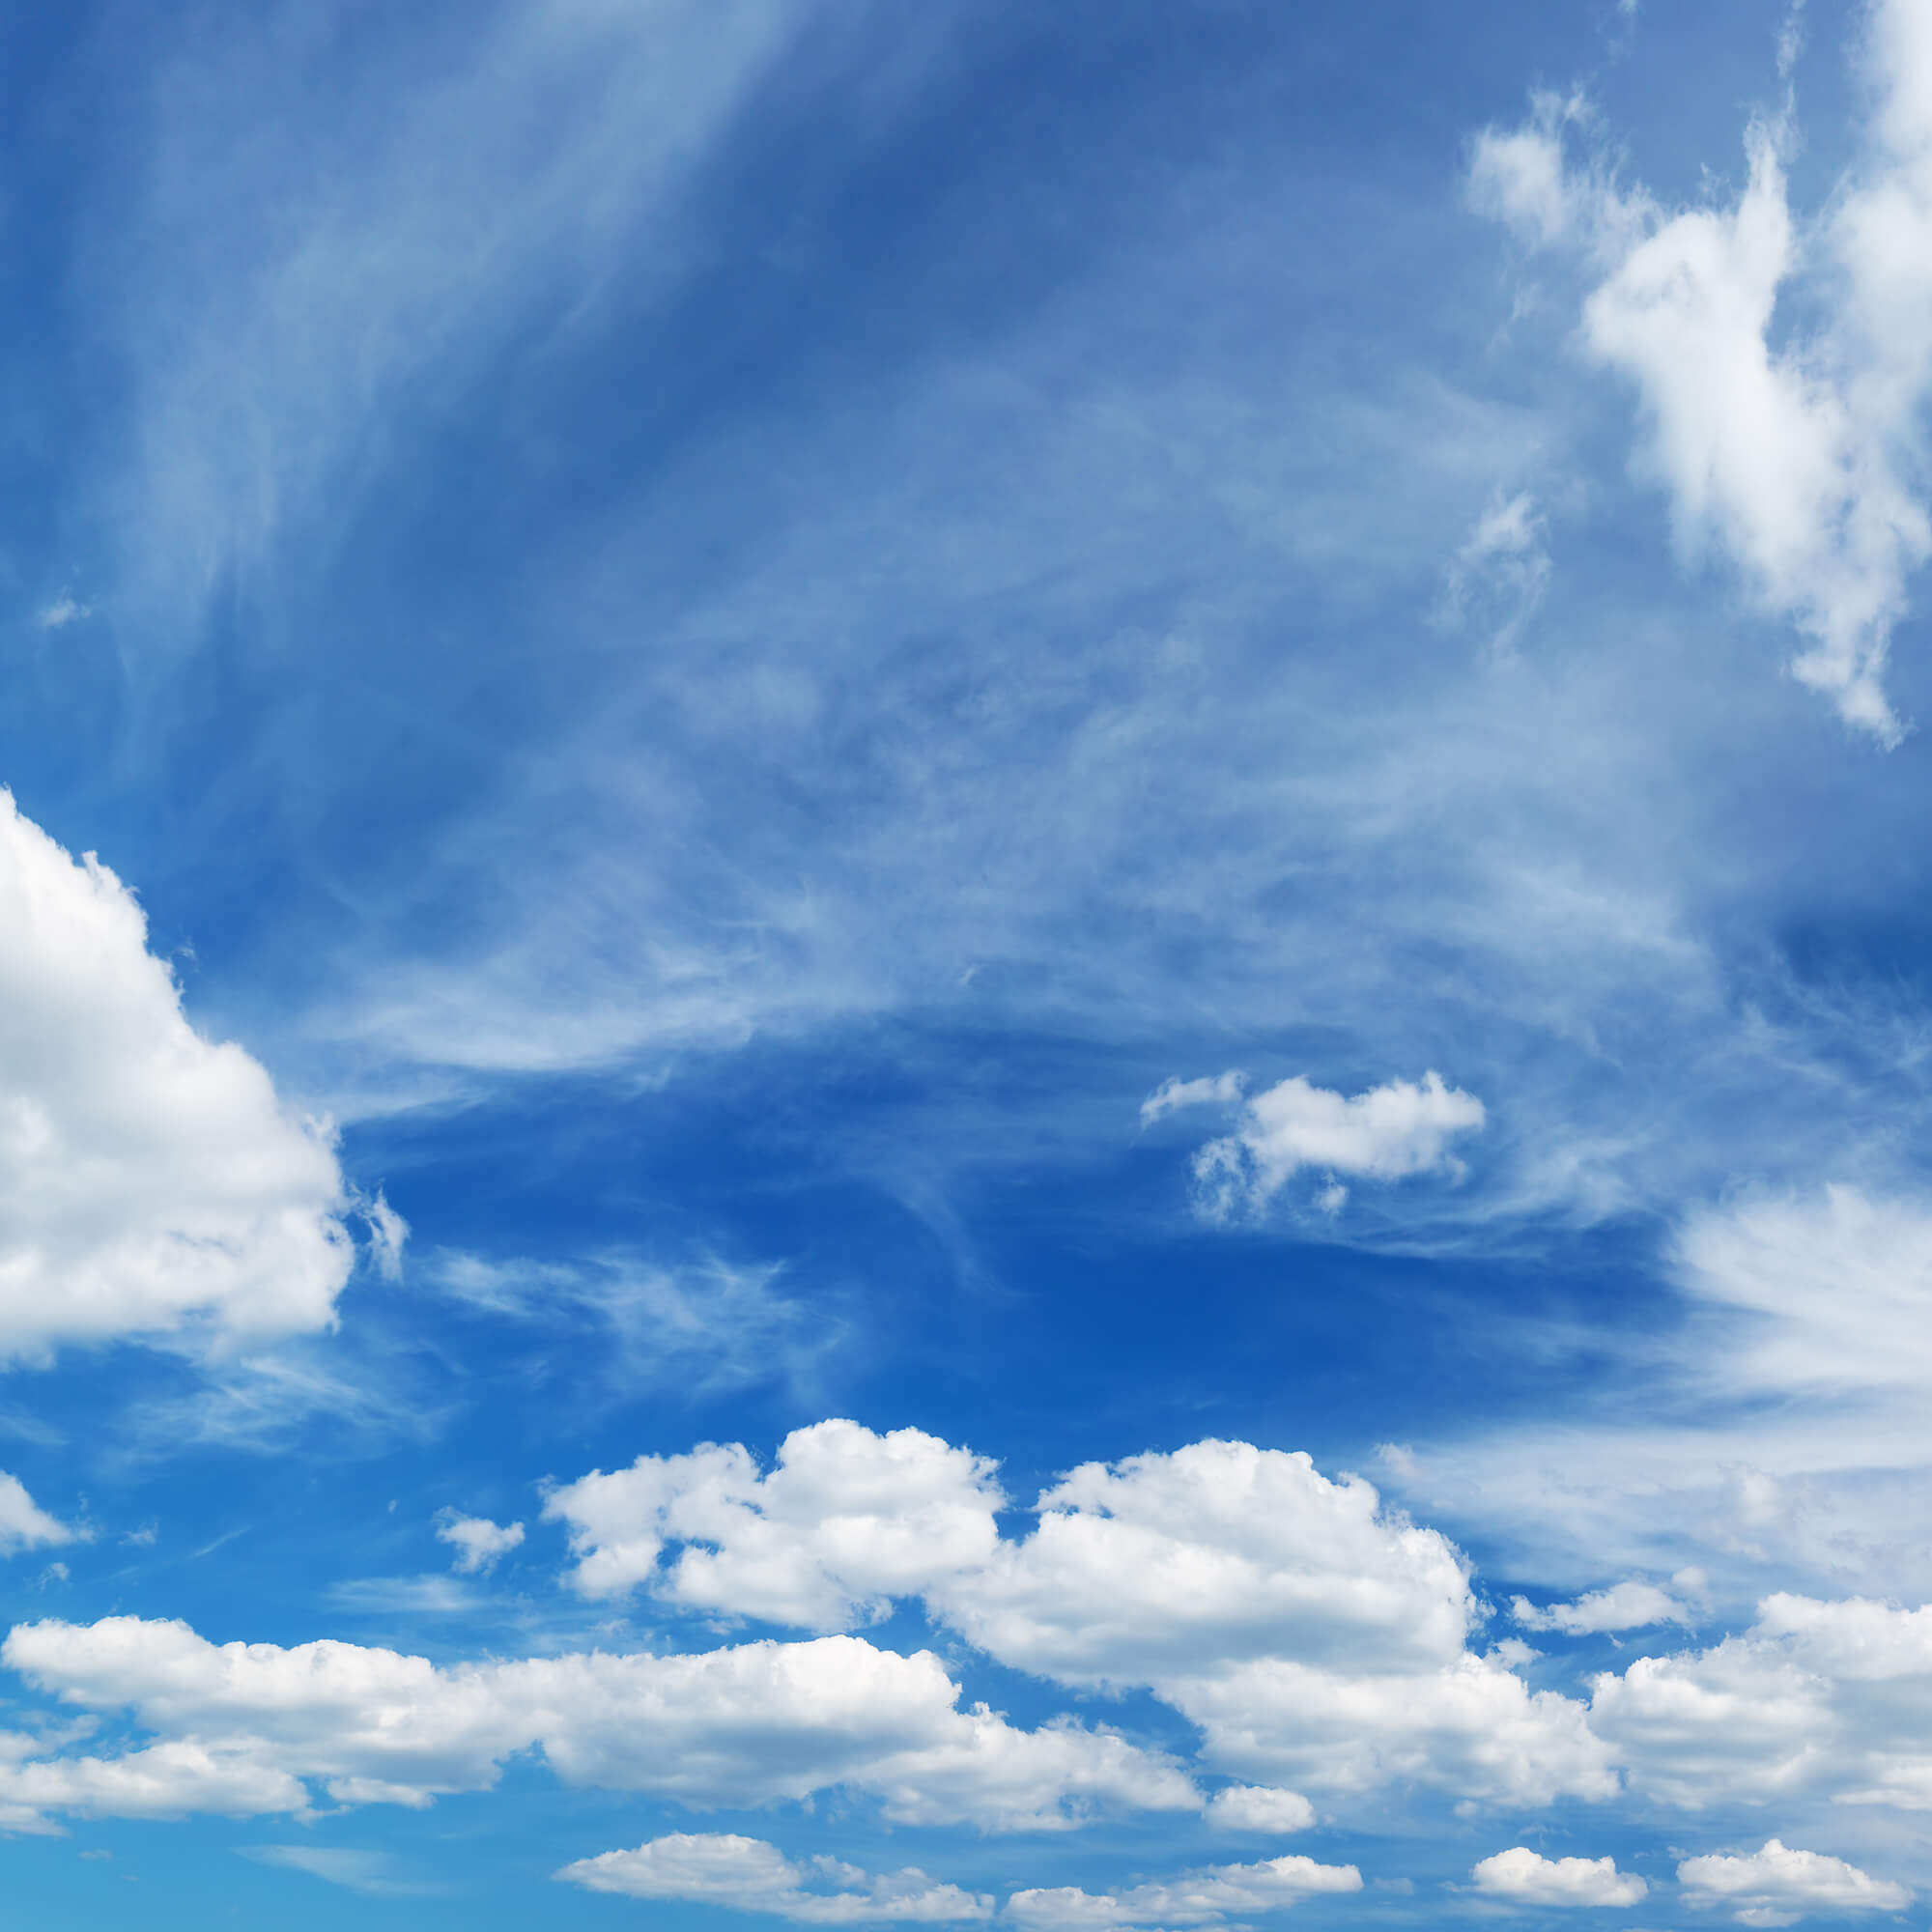 white clouds against a blue summer sky